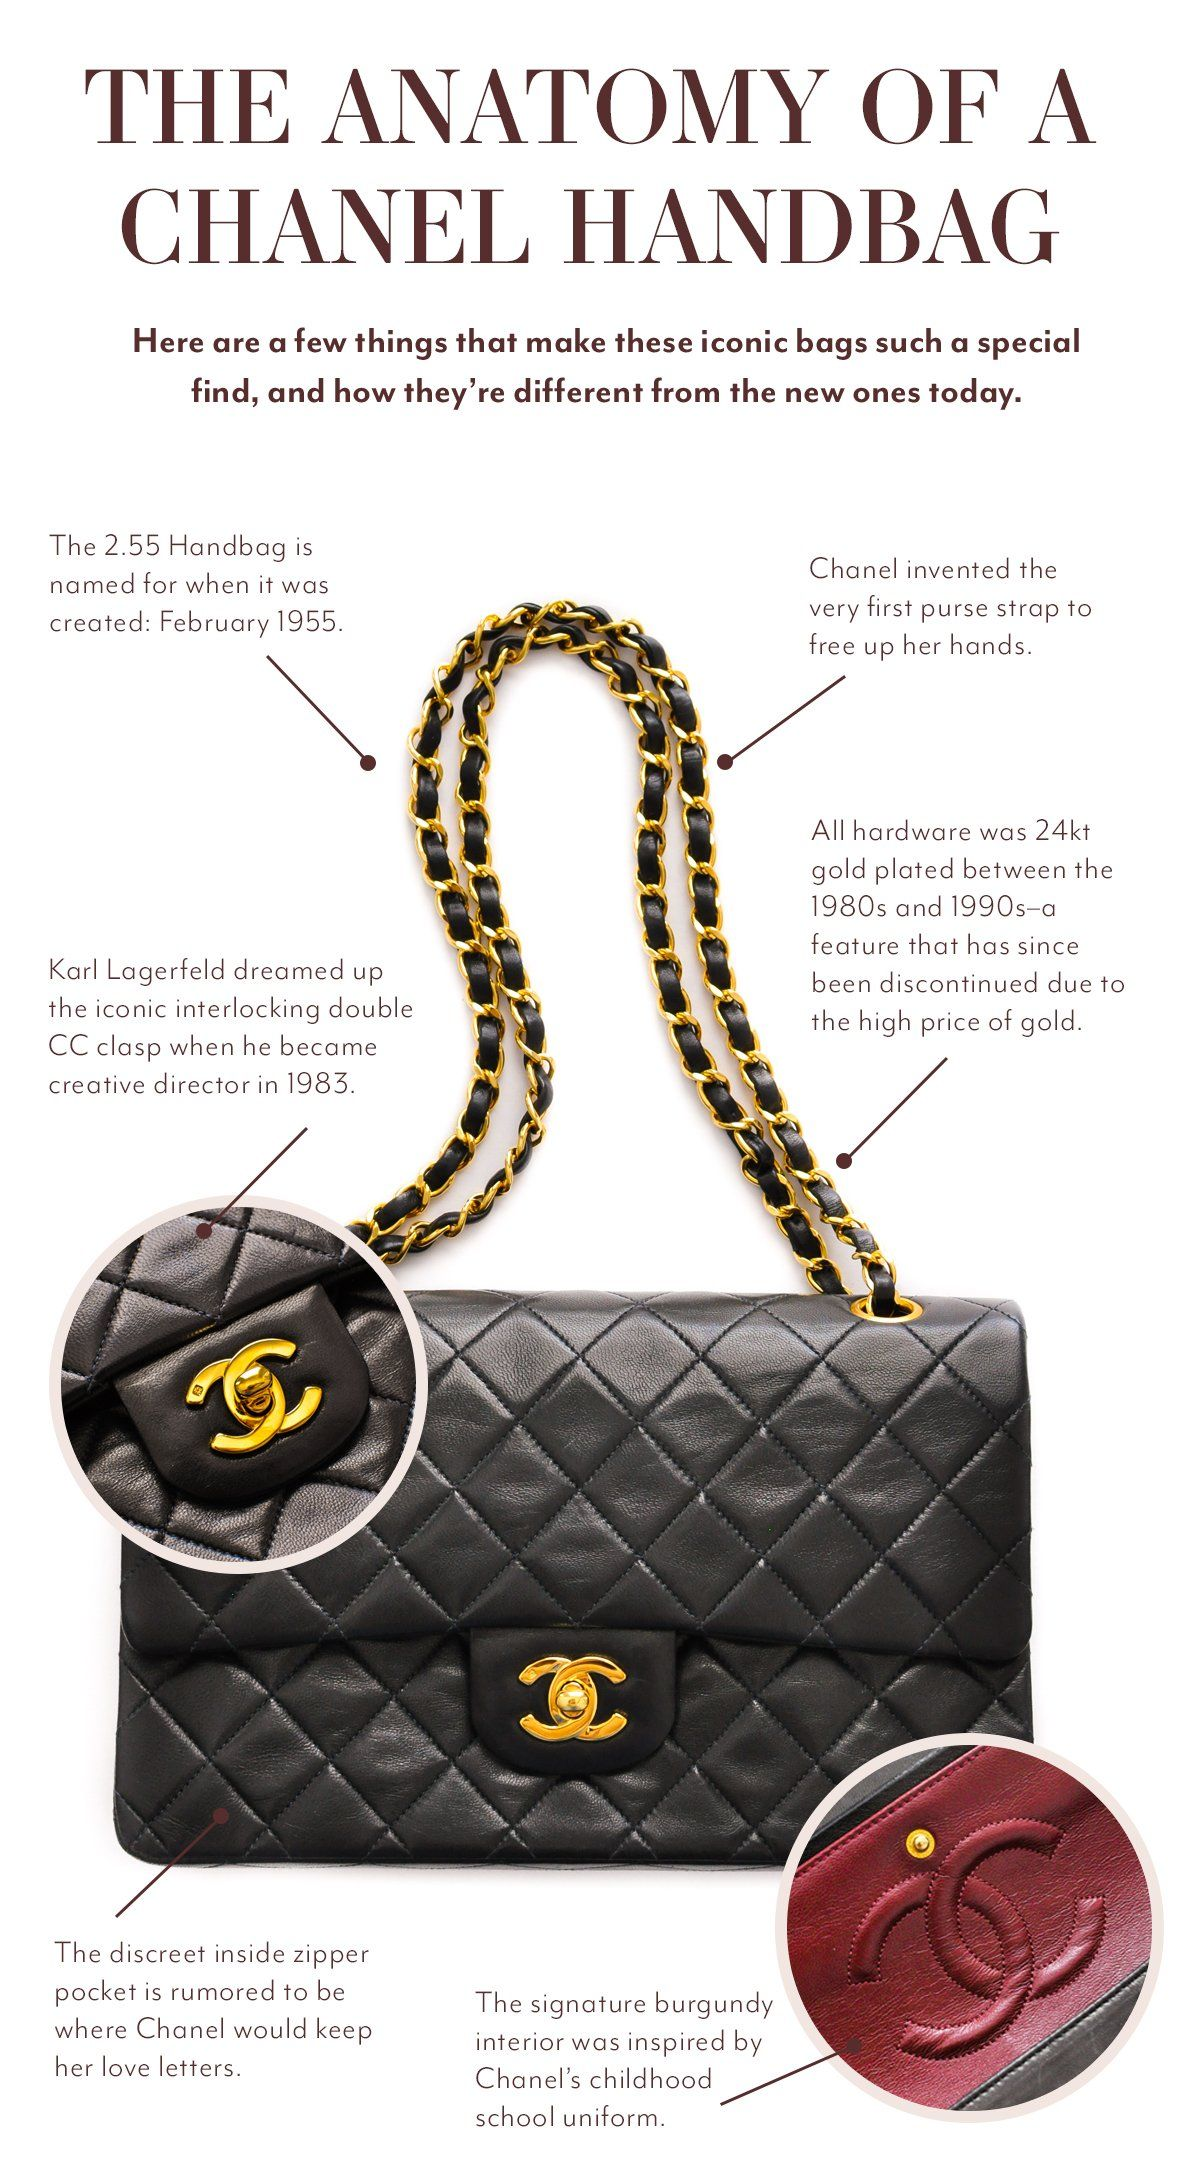 e59a4fed8b03 The Anatomy of a Vintage 2.55 Chanel Handbag – Sweet   Spark